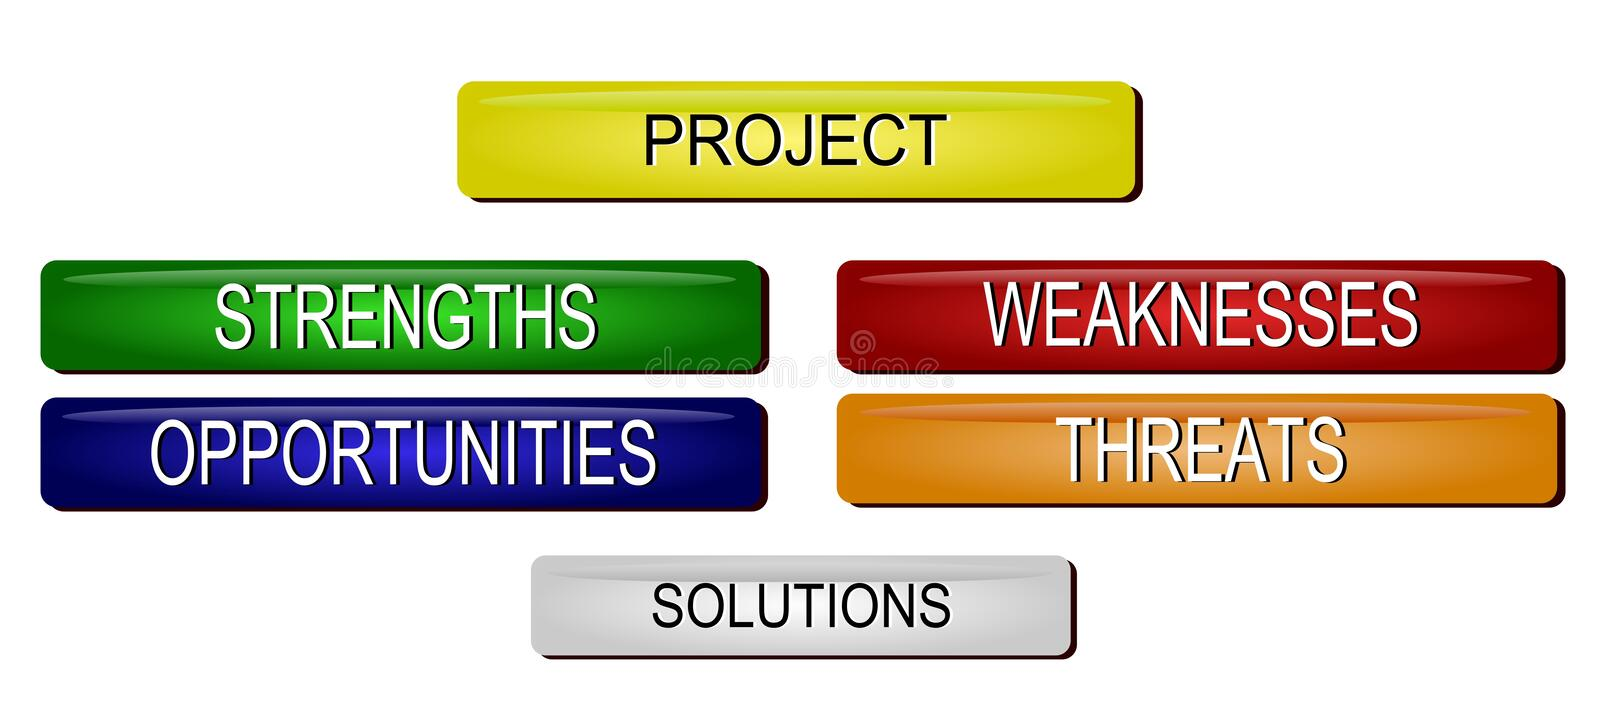 Problem Solution SWOT analysis. Illustration of SWOT analysis buttons royalty free illustration